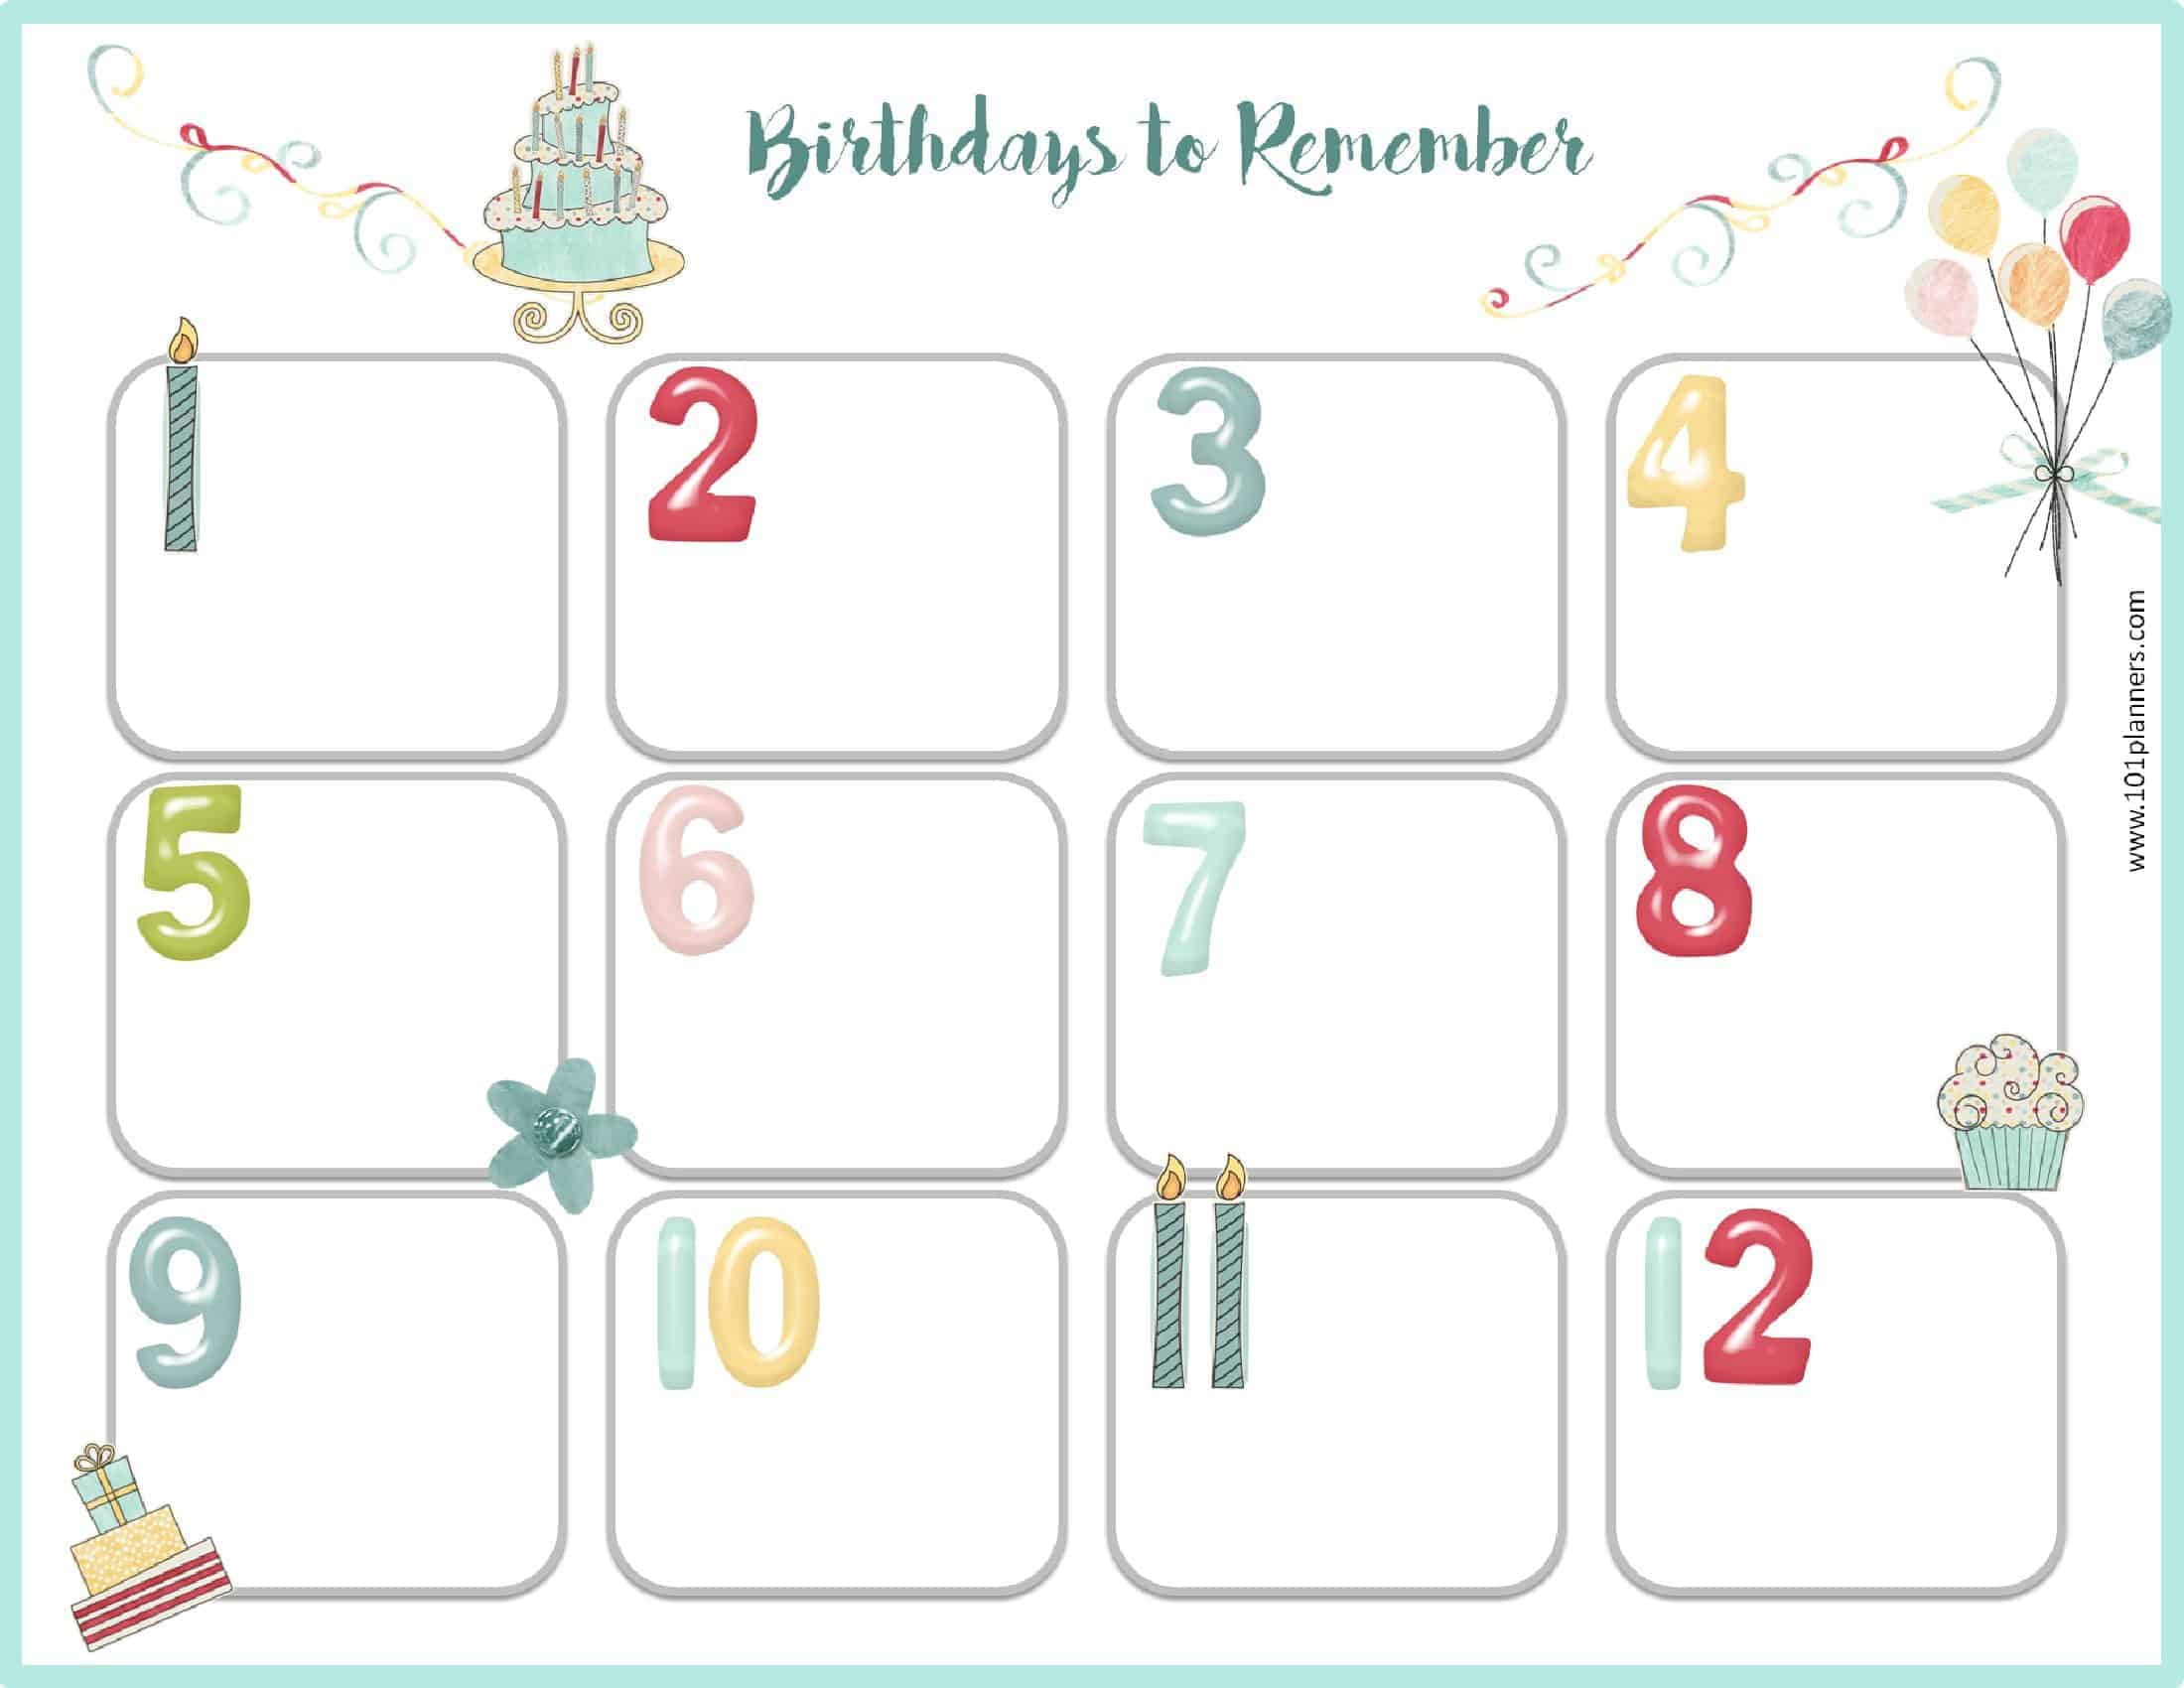 picture about Free Printable Perpetual Birthday Calendar Template titled Free of charge Birthday Calendar Printable Customizable Numerous